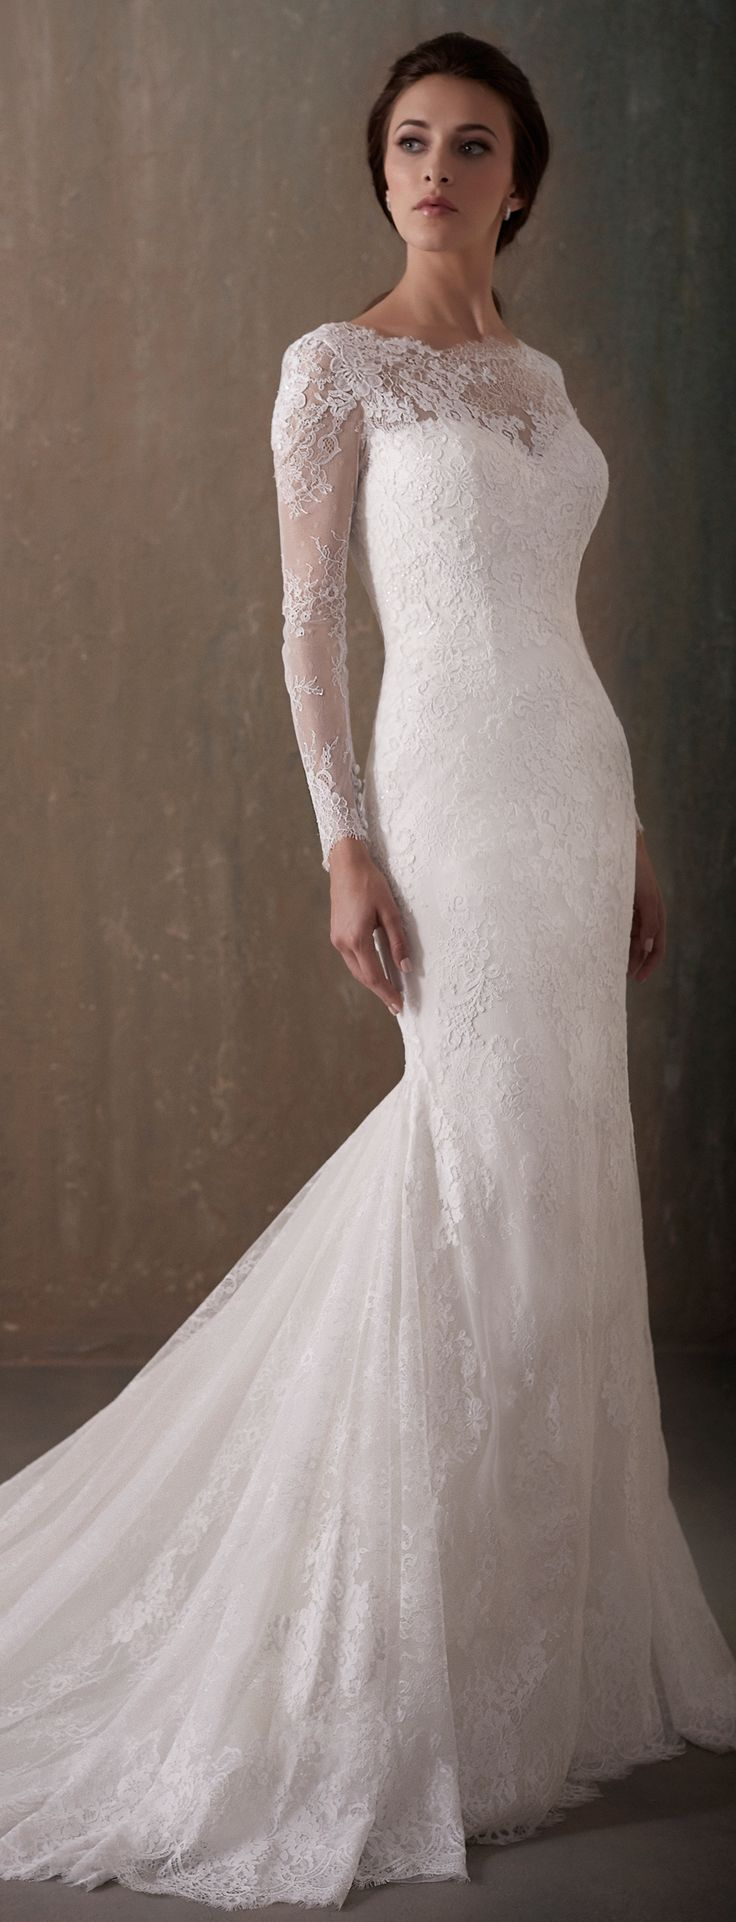 25+ best ideas about Fitted wedding dresses on Pinterest ... - photo #36